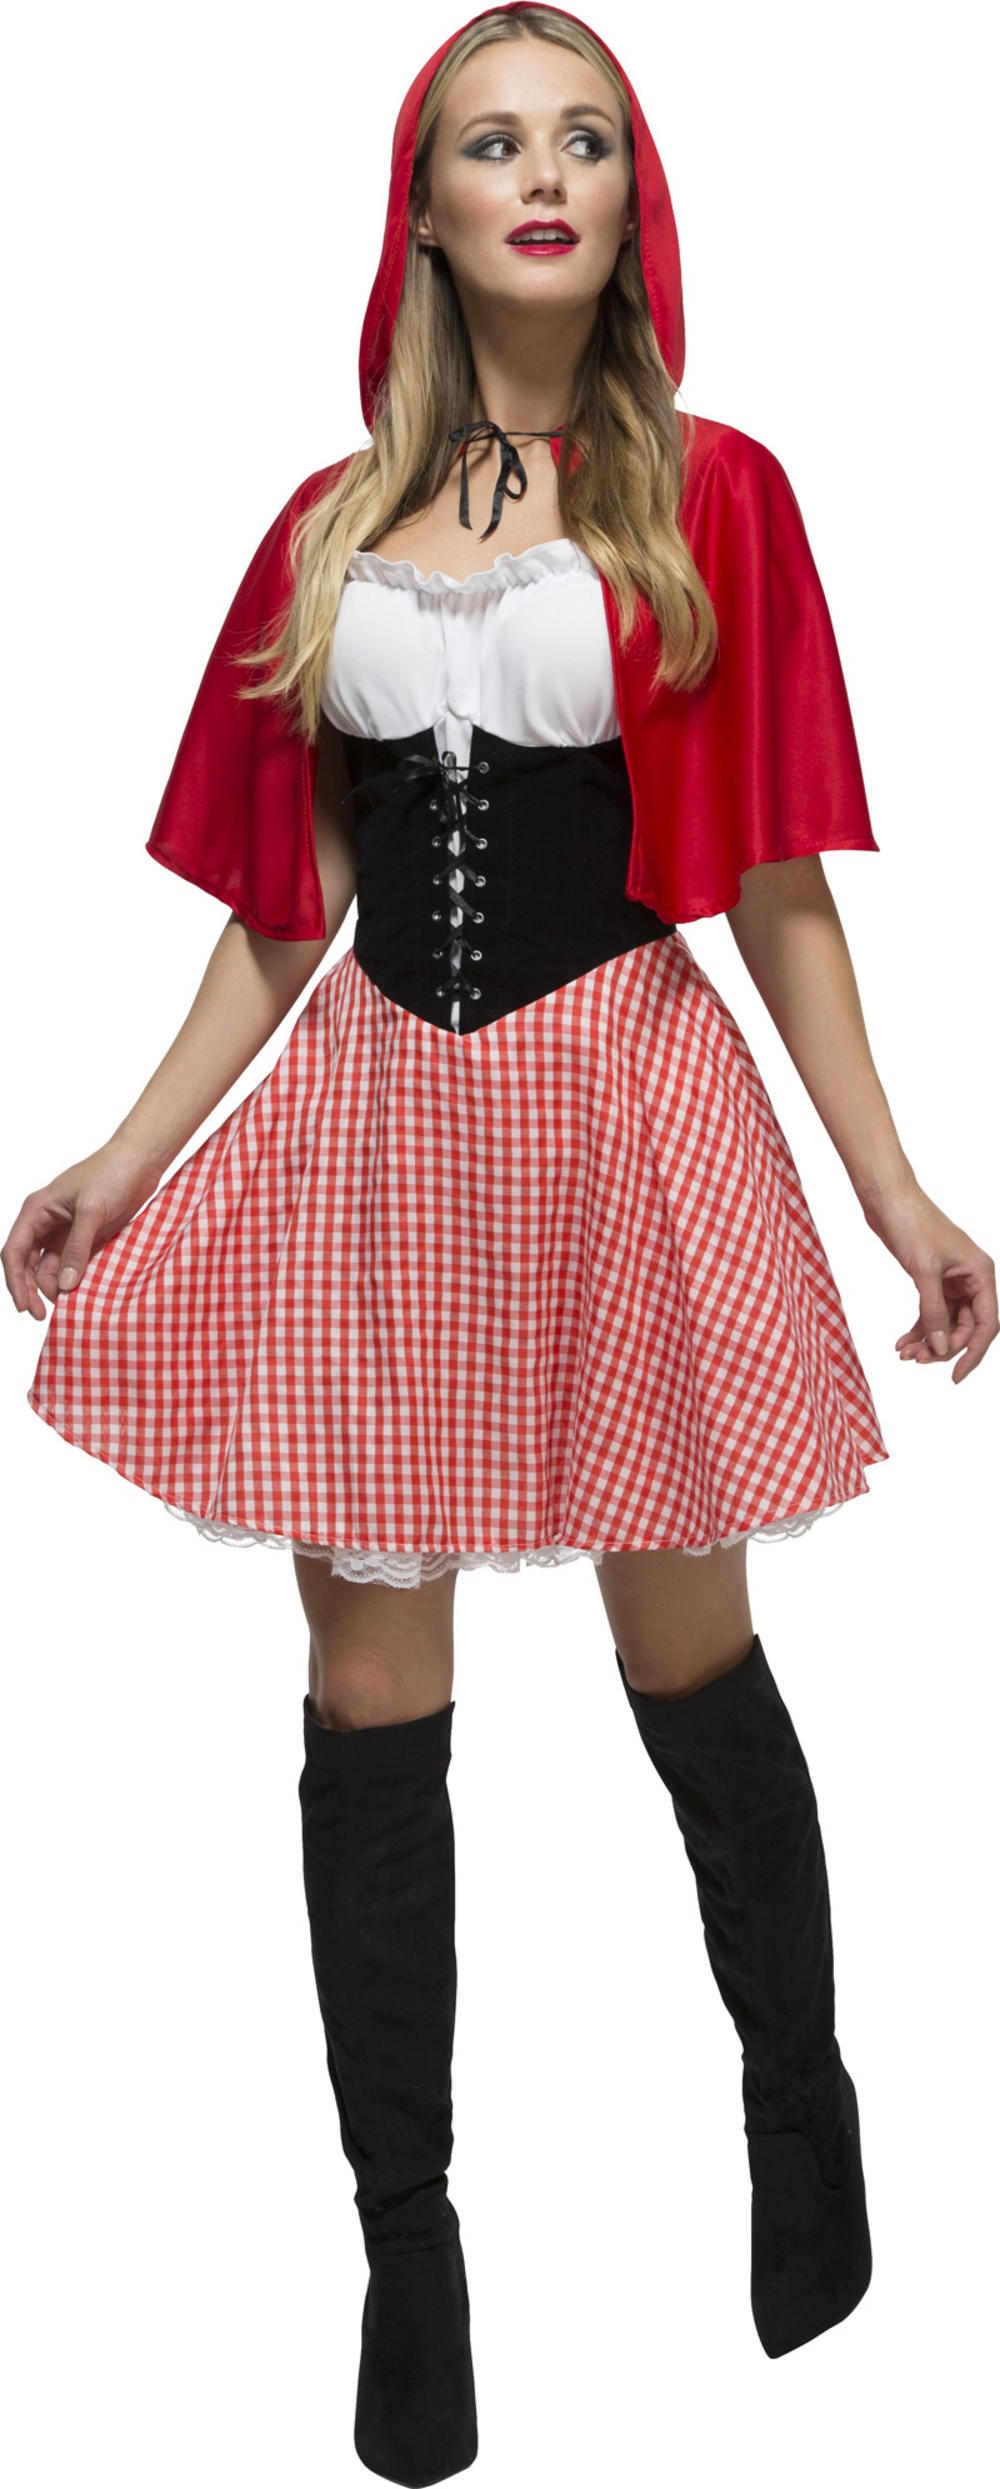 Fever Red Riding Hood Ladies Costume